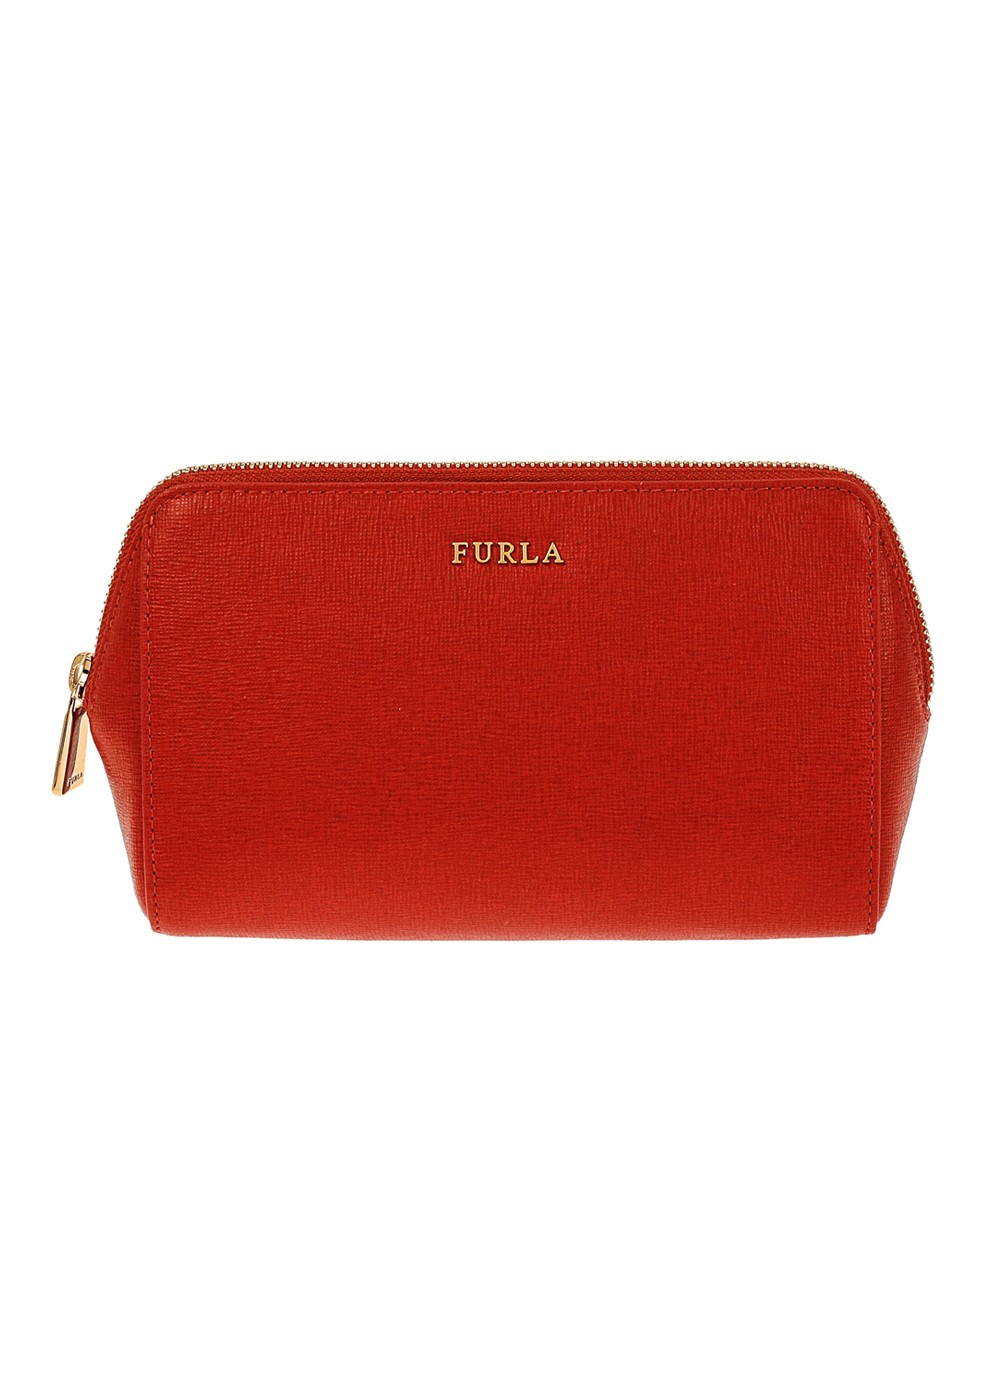 【最大58%OFF】【新商品】ポーチ|VE/SS|ポーチ|FURLA - wallet and more